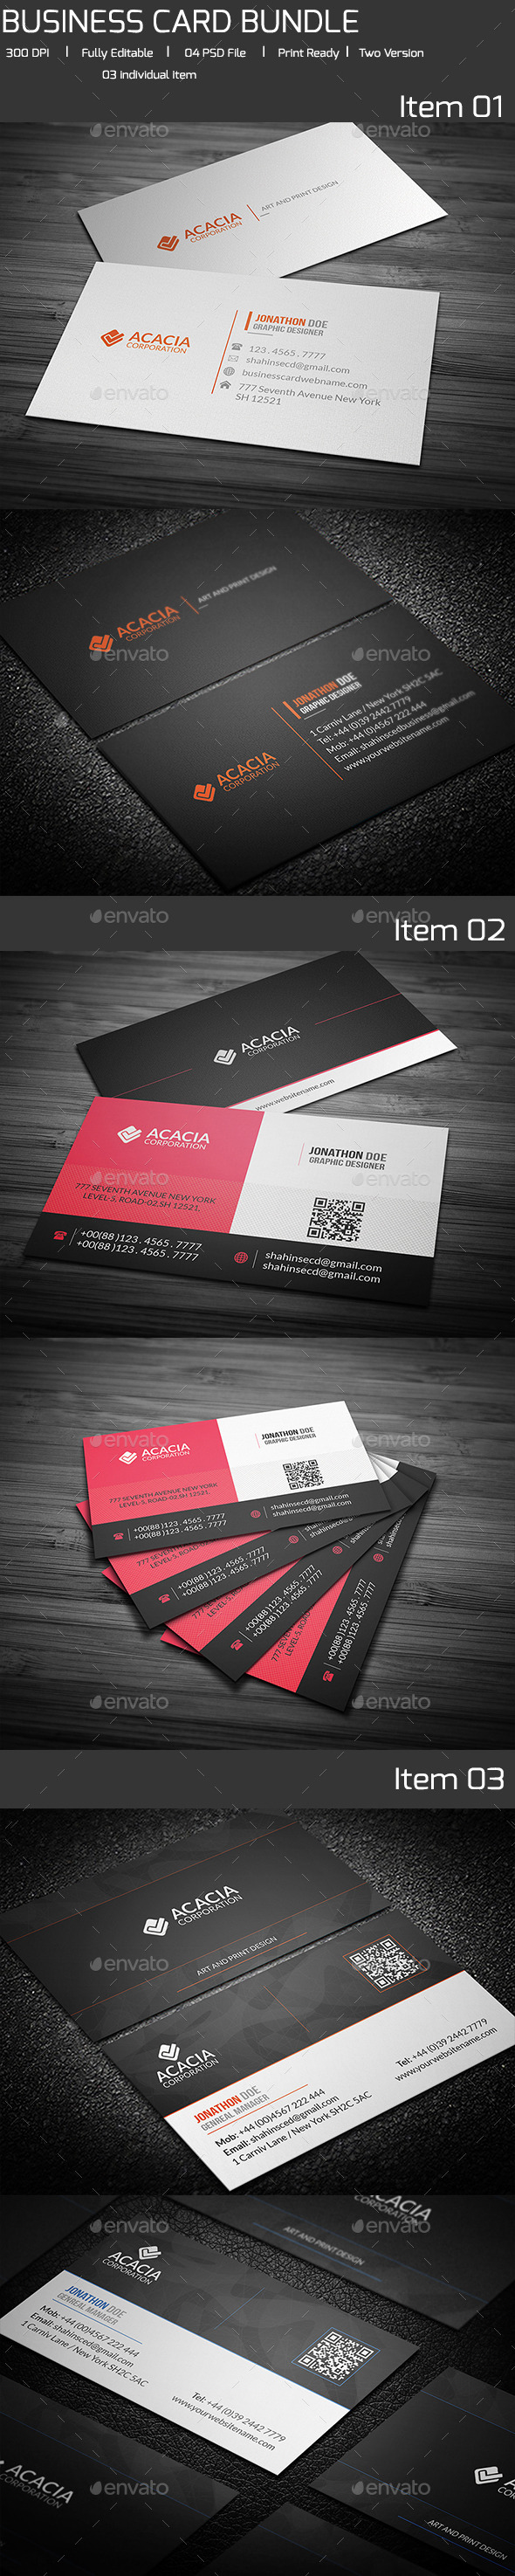 Bundle-03 Business Card 3 in 1